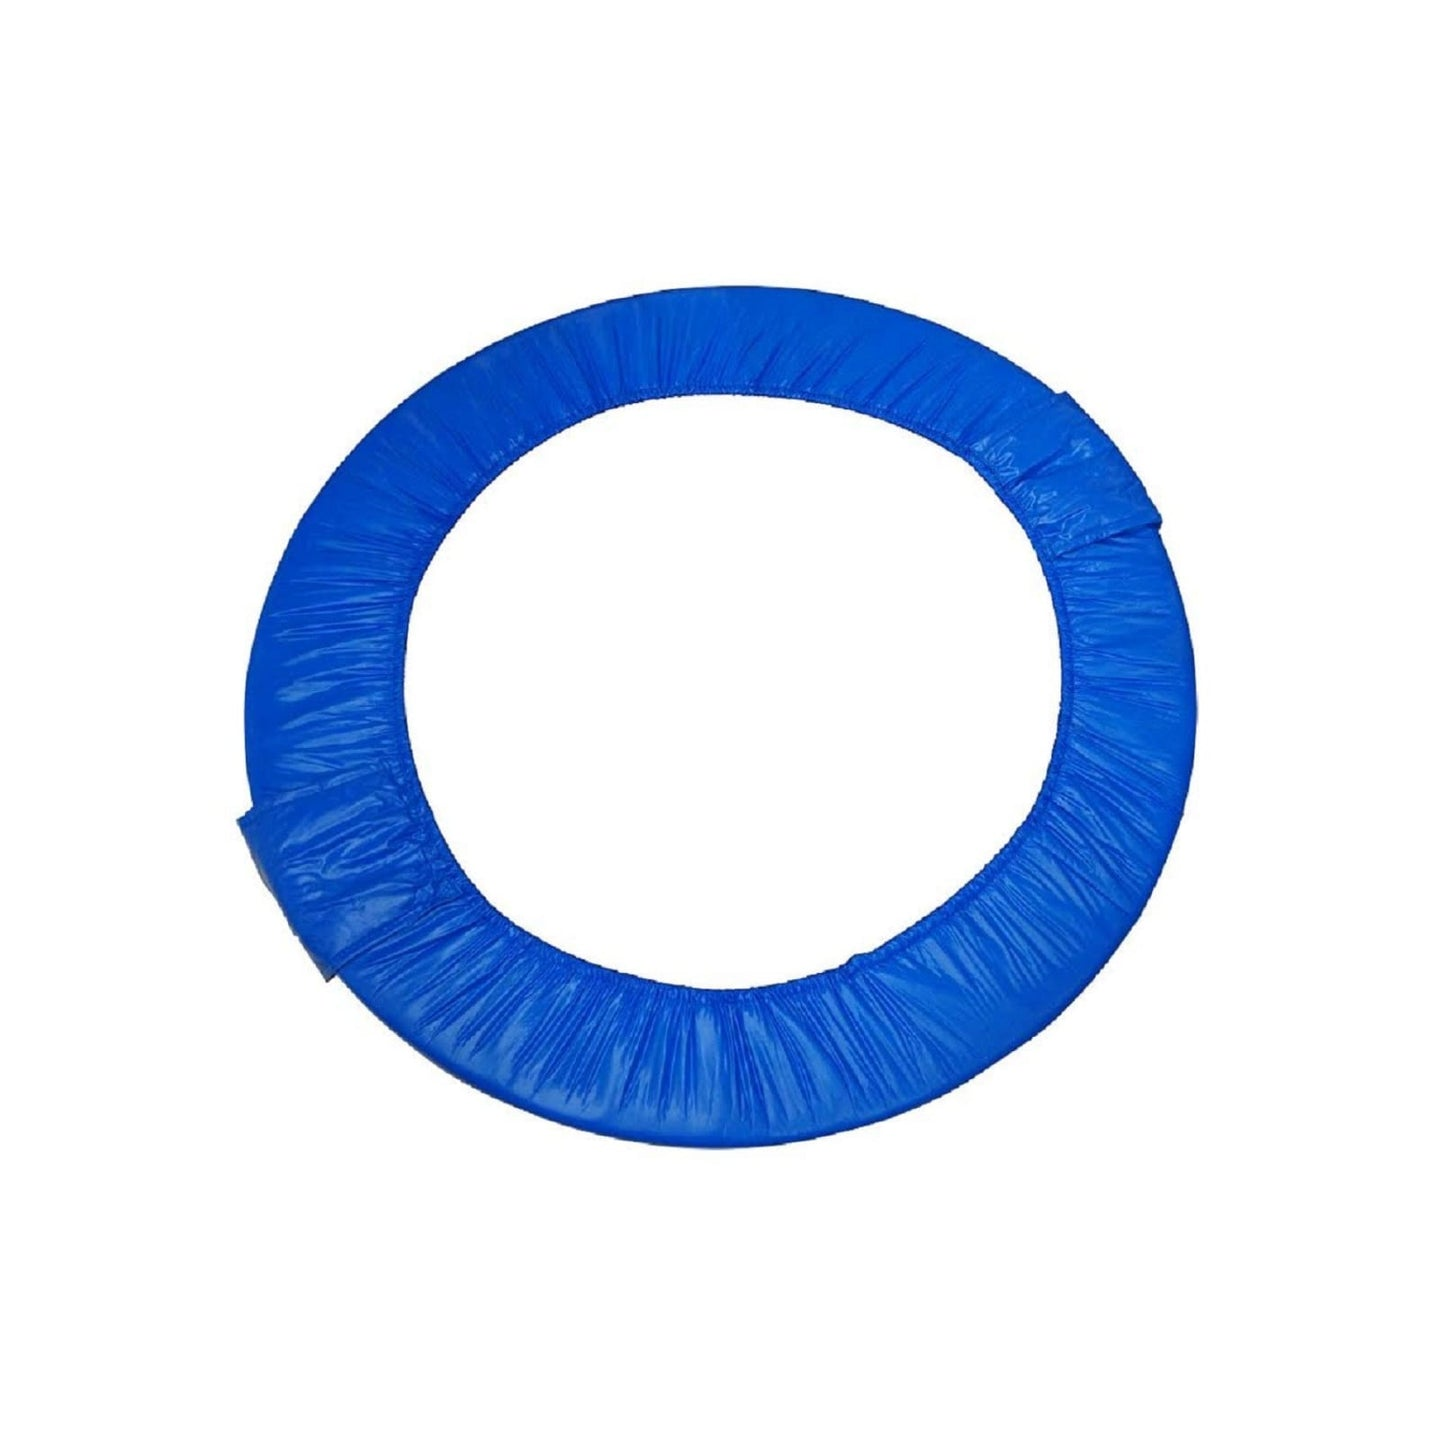 Upper Bounce 40 Mini Round Foldable Replacement Trampoline Safety Pad (Spring Cover) For 6 Legs - Blue - Trampoline Replacements